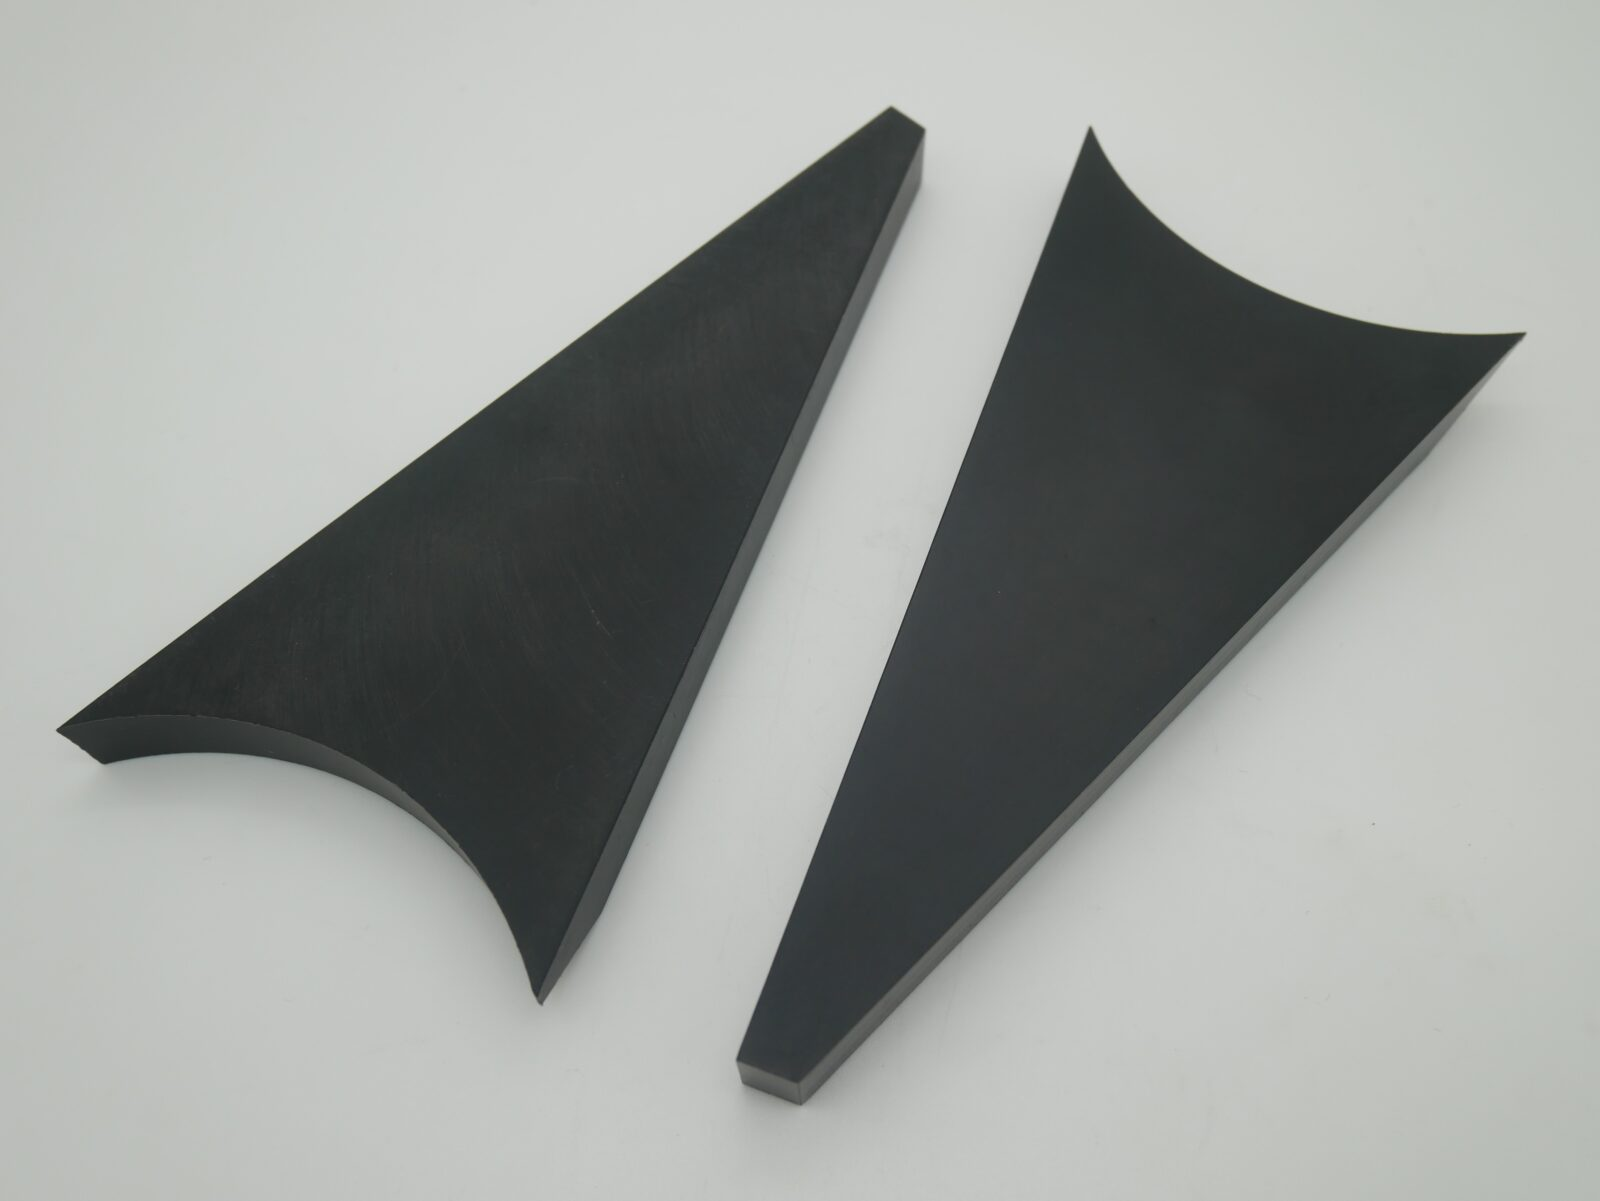 XL105 Ink Duct Dividers (Pair) HDM: F2.008.109 D/S F2.008.110 O/S